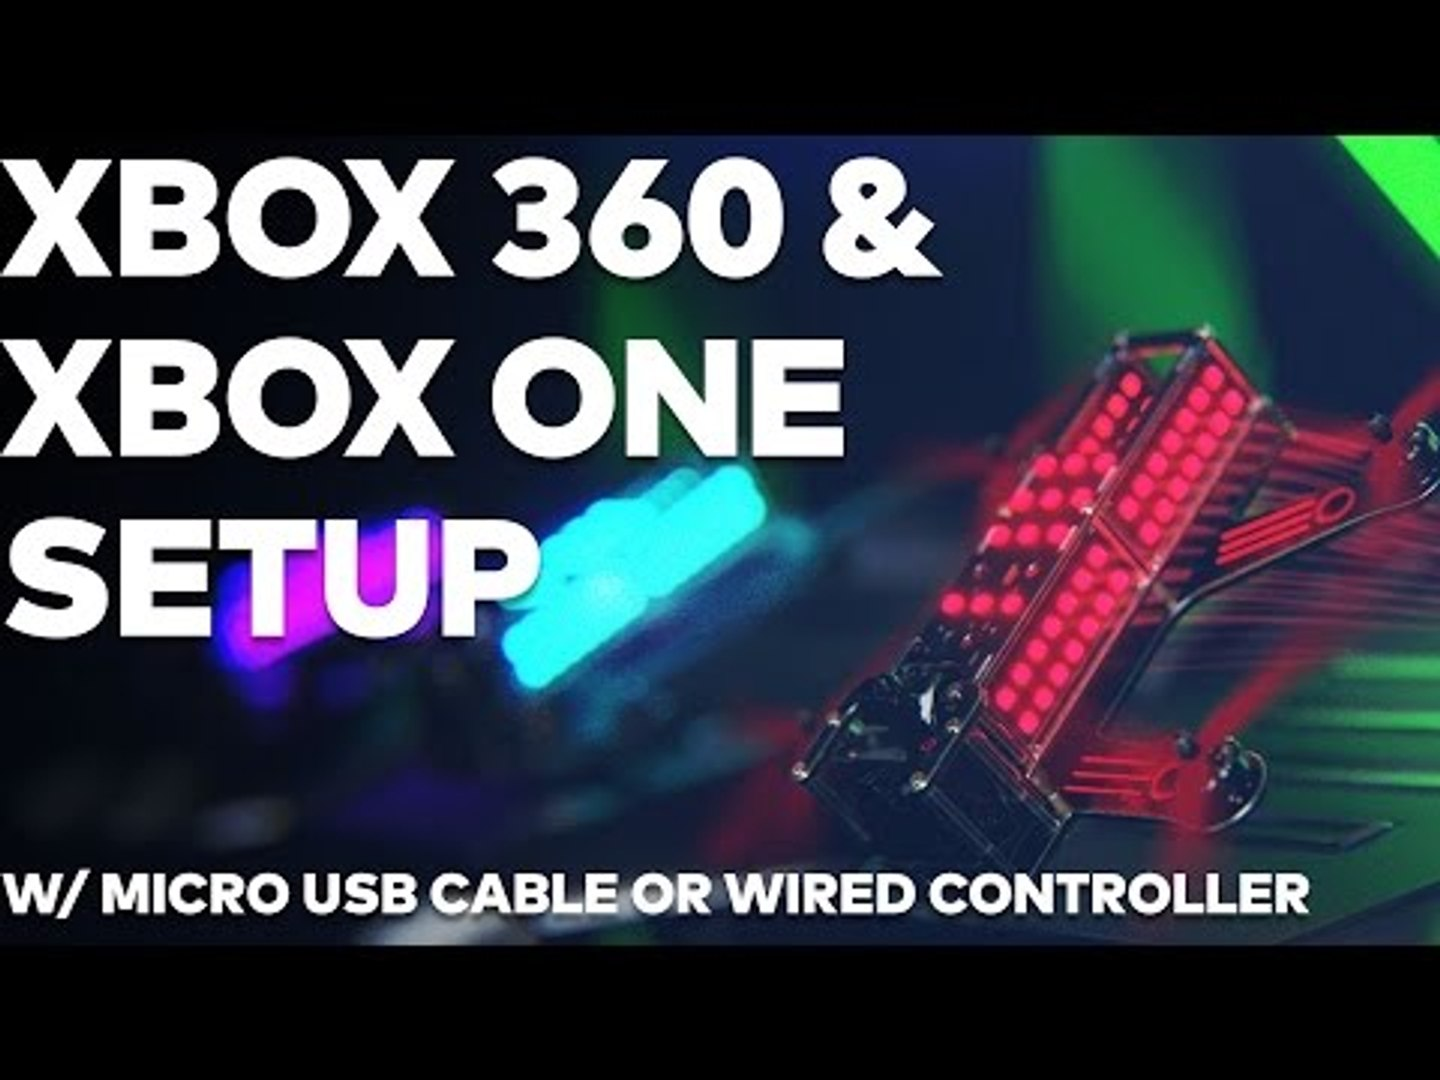 How to set up your Xbox One and Xbox 360 | Drone Racing League FPV Simulator